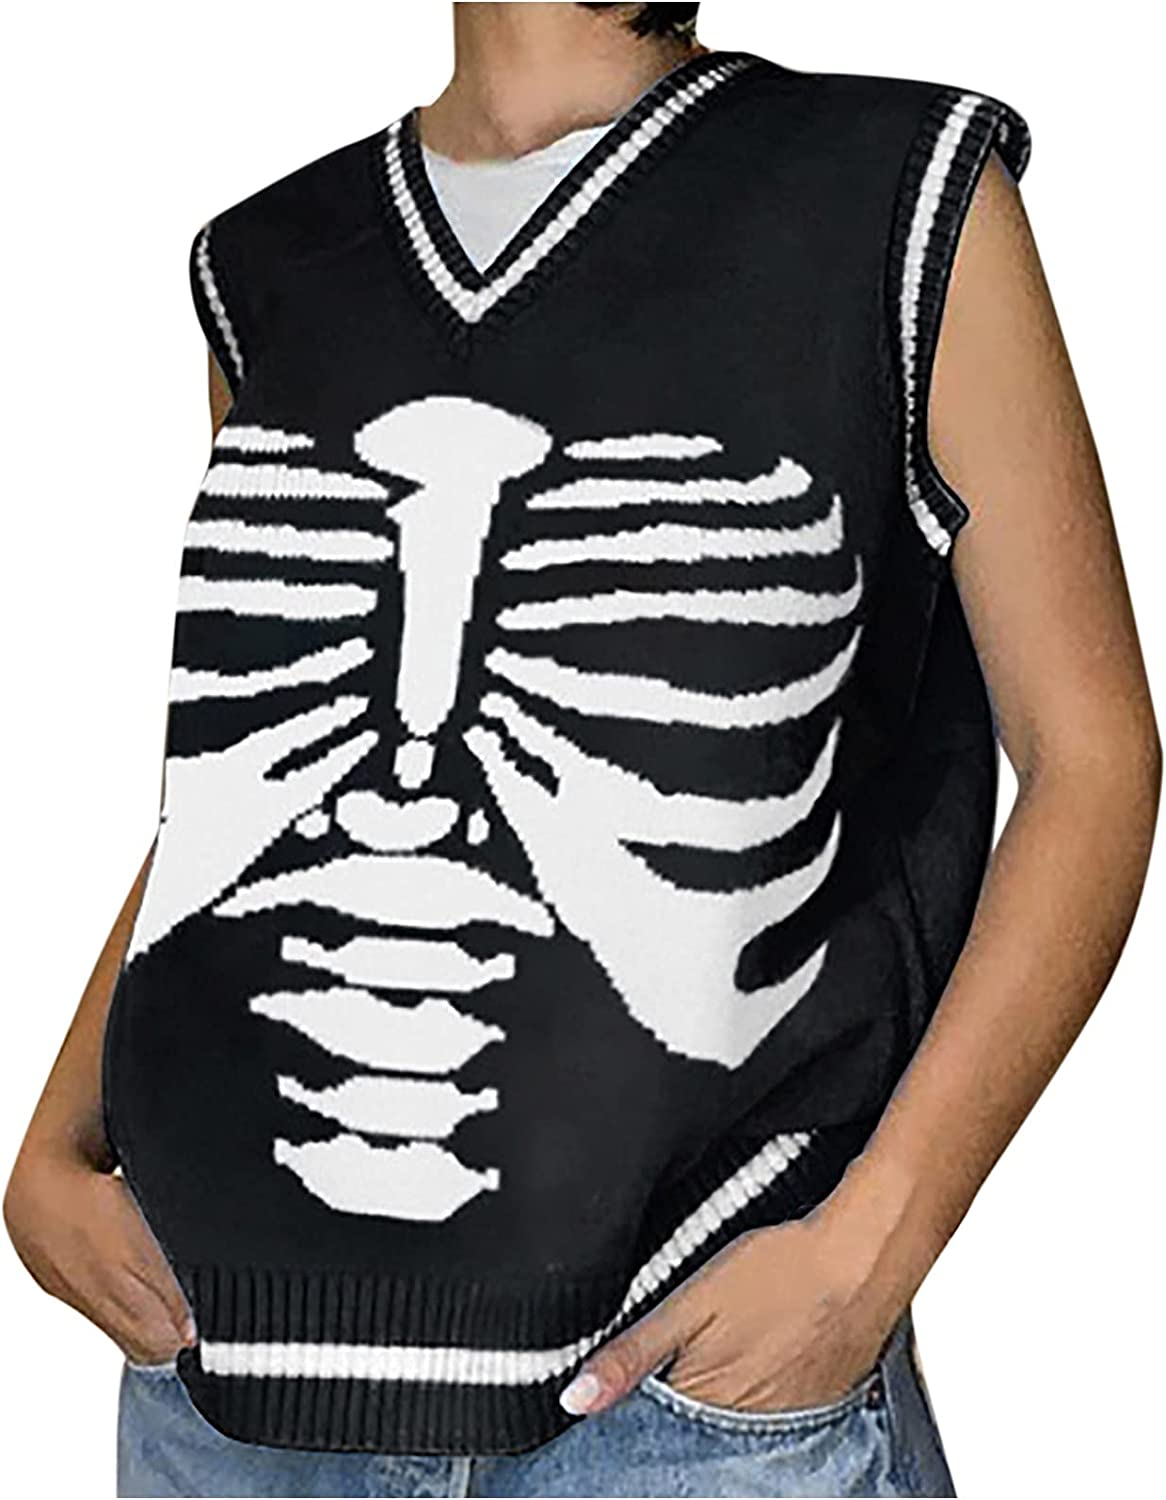 Felgay Fashion Women's Knitted Sweate free shipping Sleeveless Graphic Printed Directly managed store